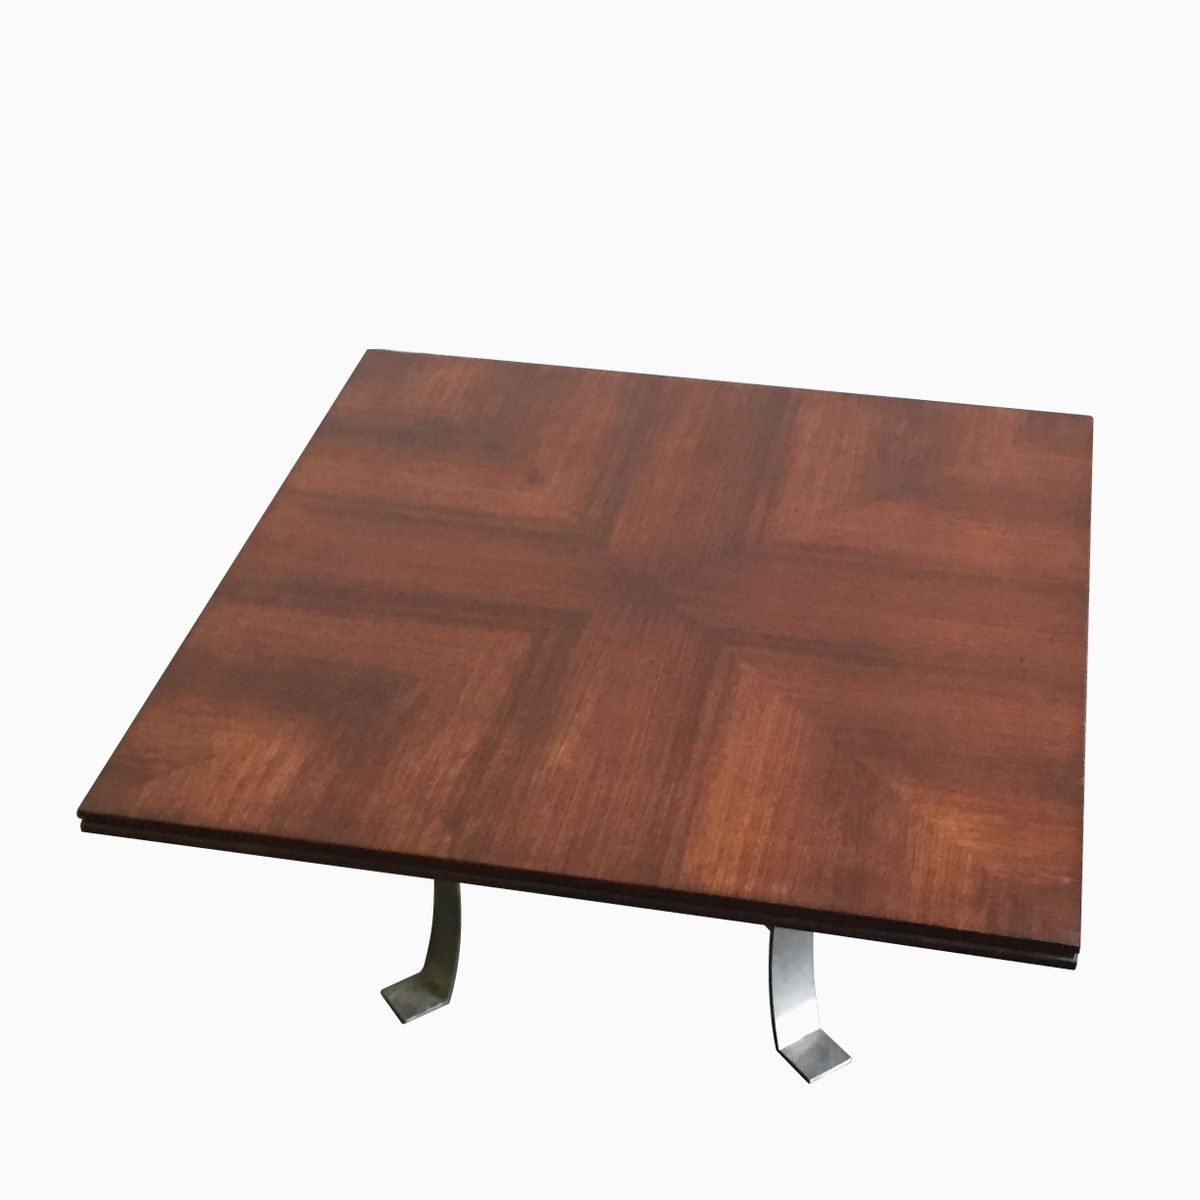 Vintage Square Coffee Table With Metal Legs For Sale At Pamono